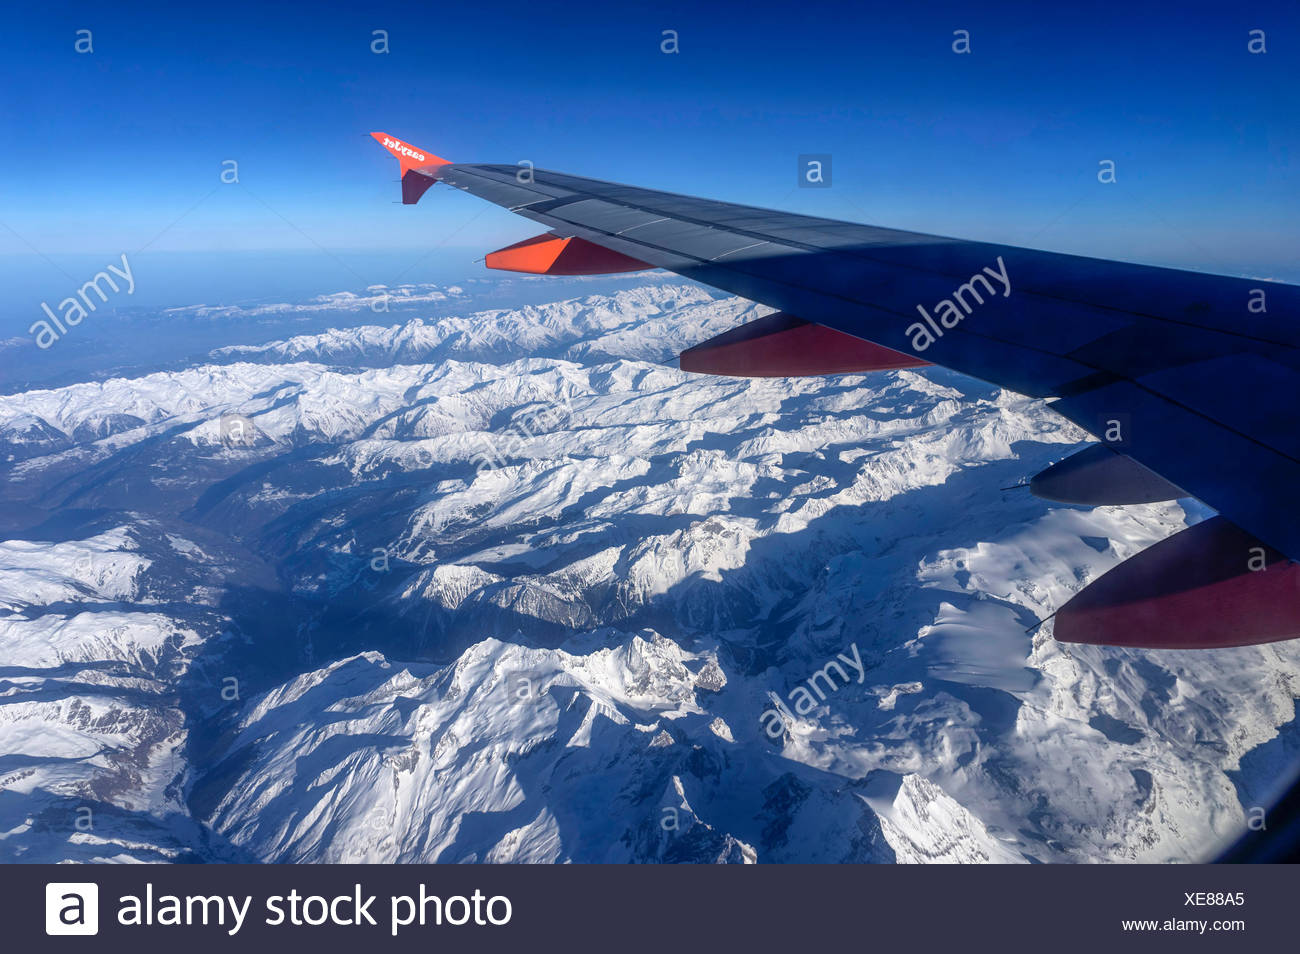 Aerial view from an aeroplane over the snowy Alps, Alps, Europe - Stock Image